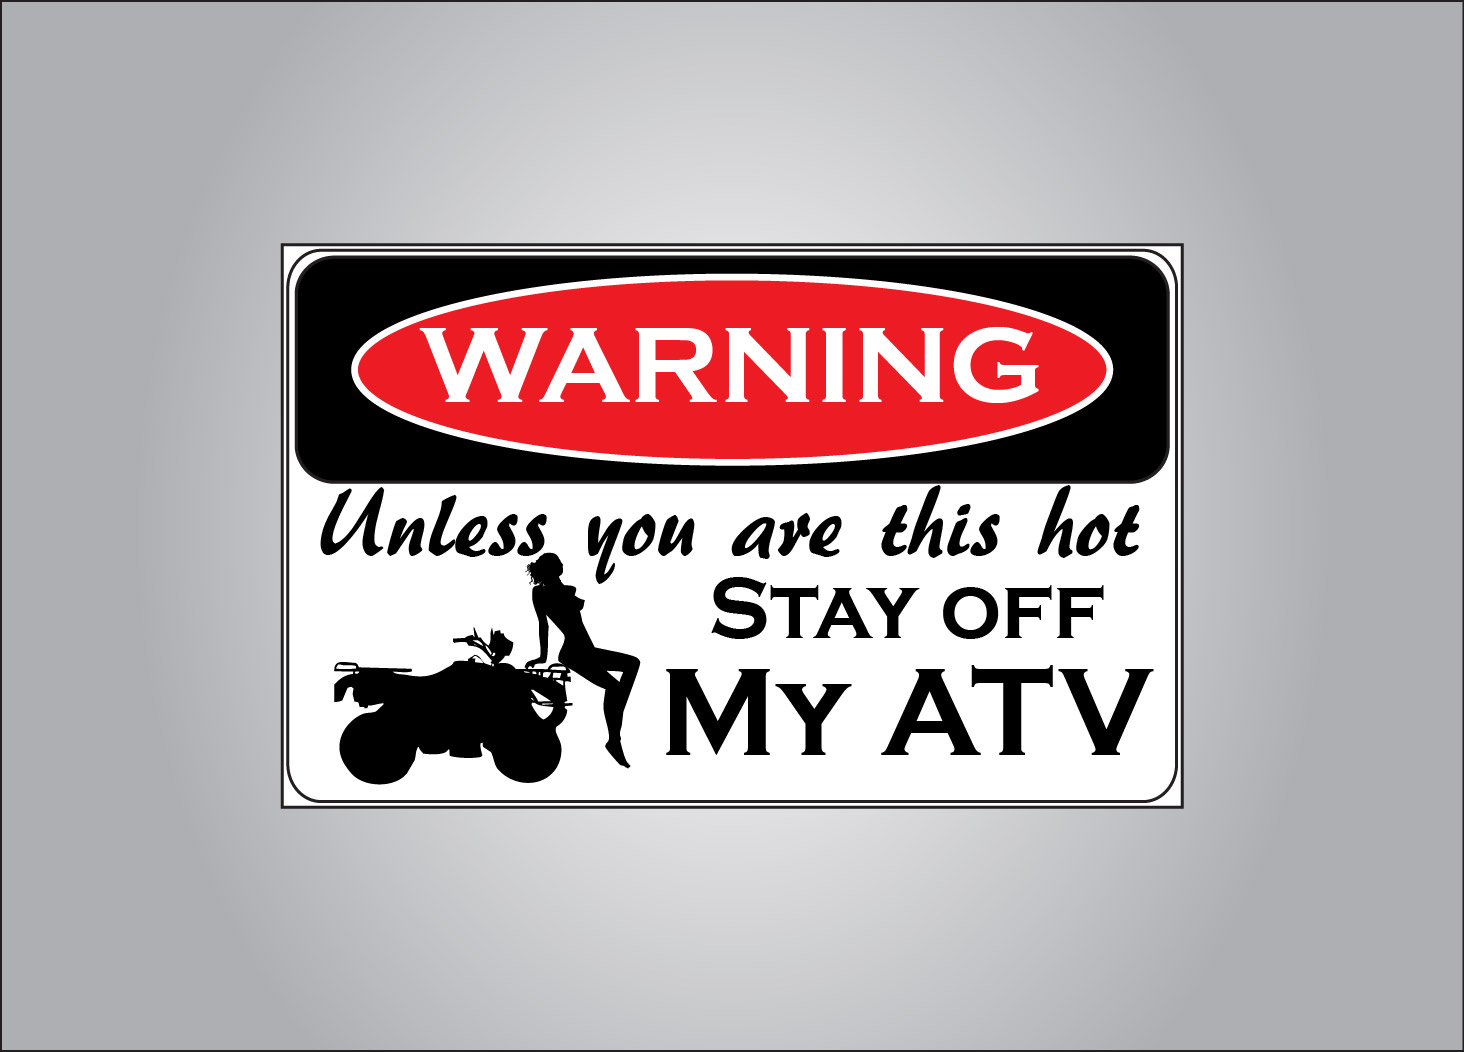 Stay off - unless you are hot...